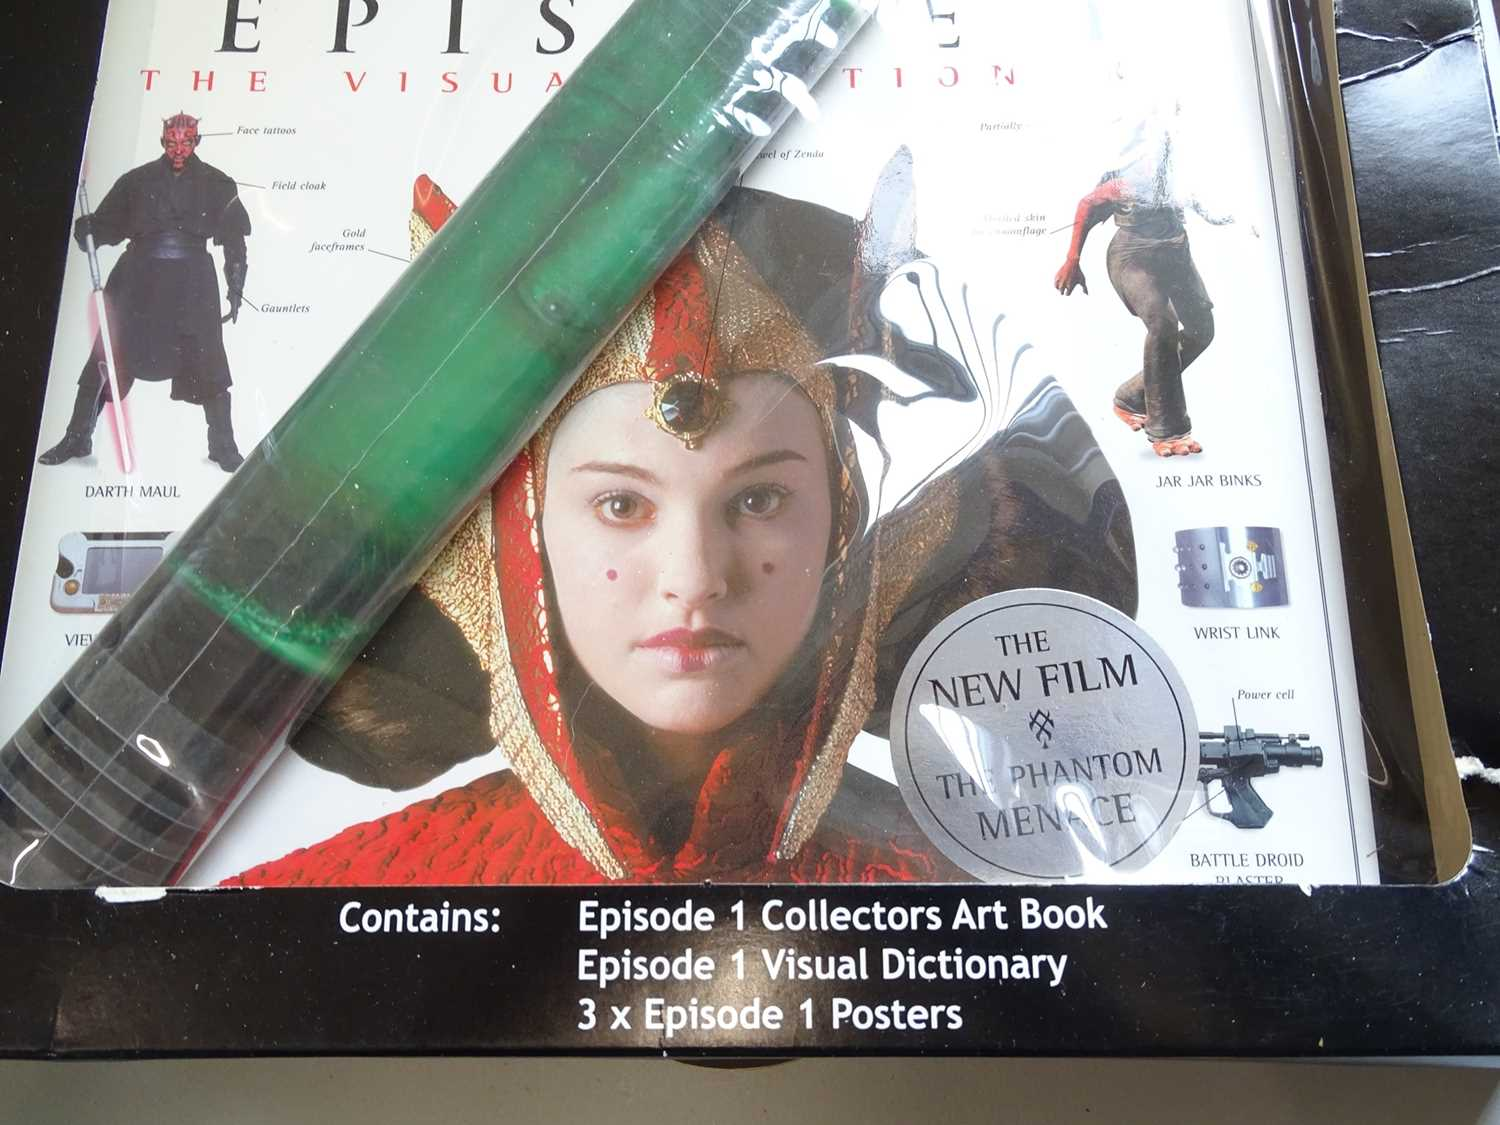 A large group of STAR WARS collectable items including a Darth Vader money bank together with books, - Image 3 of 8